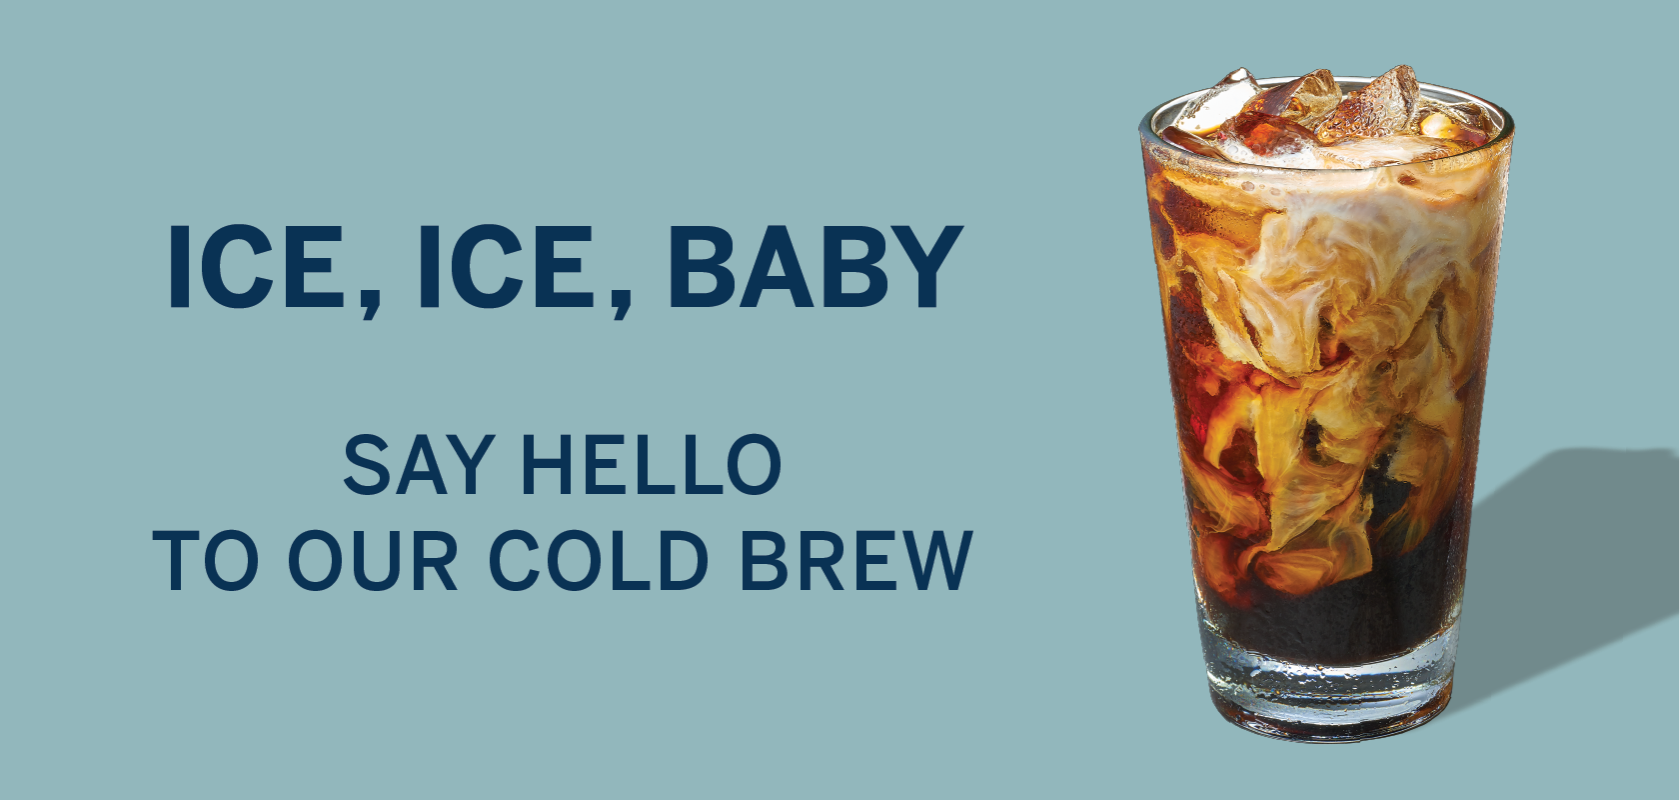 ICE, ICE , BABY - Say Hello To Our Cold Brew